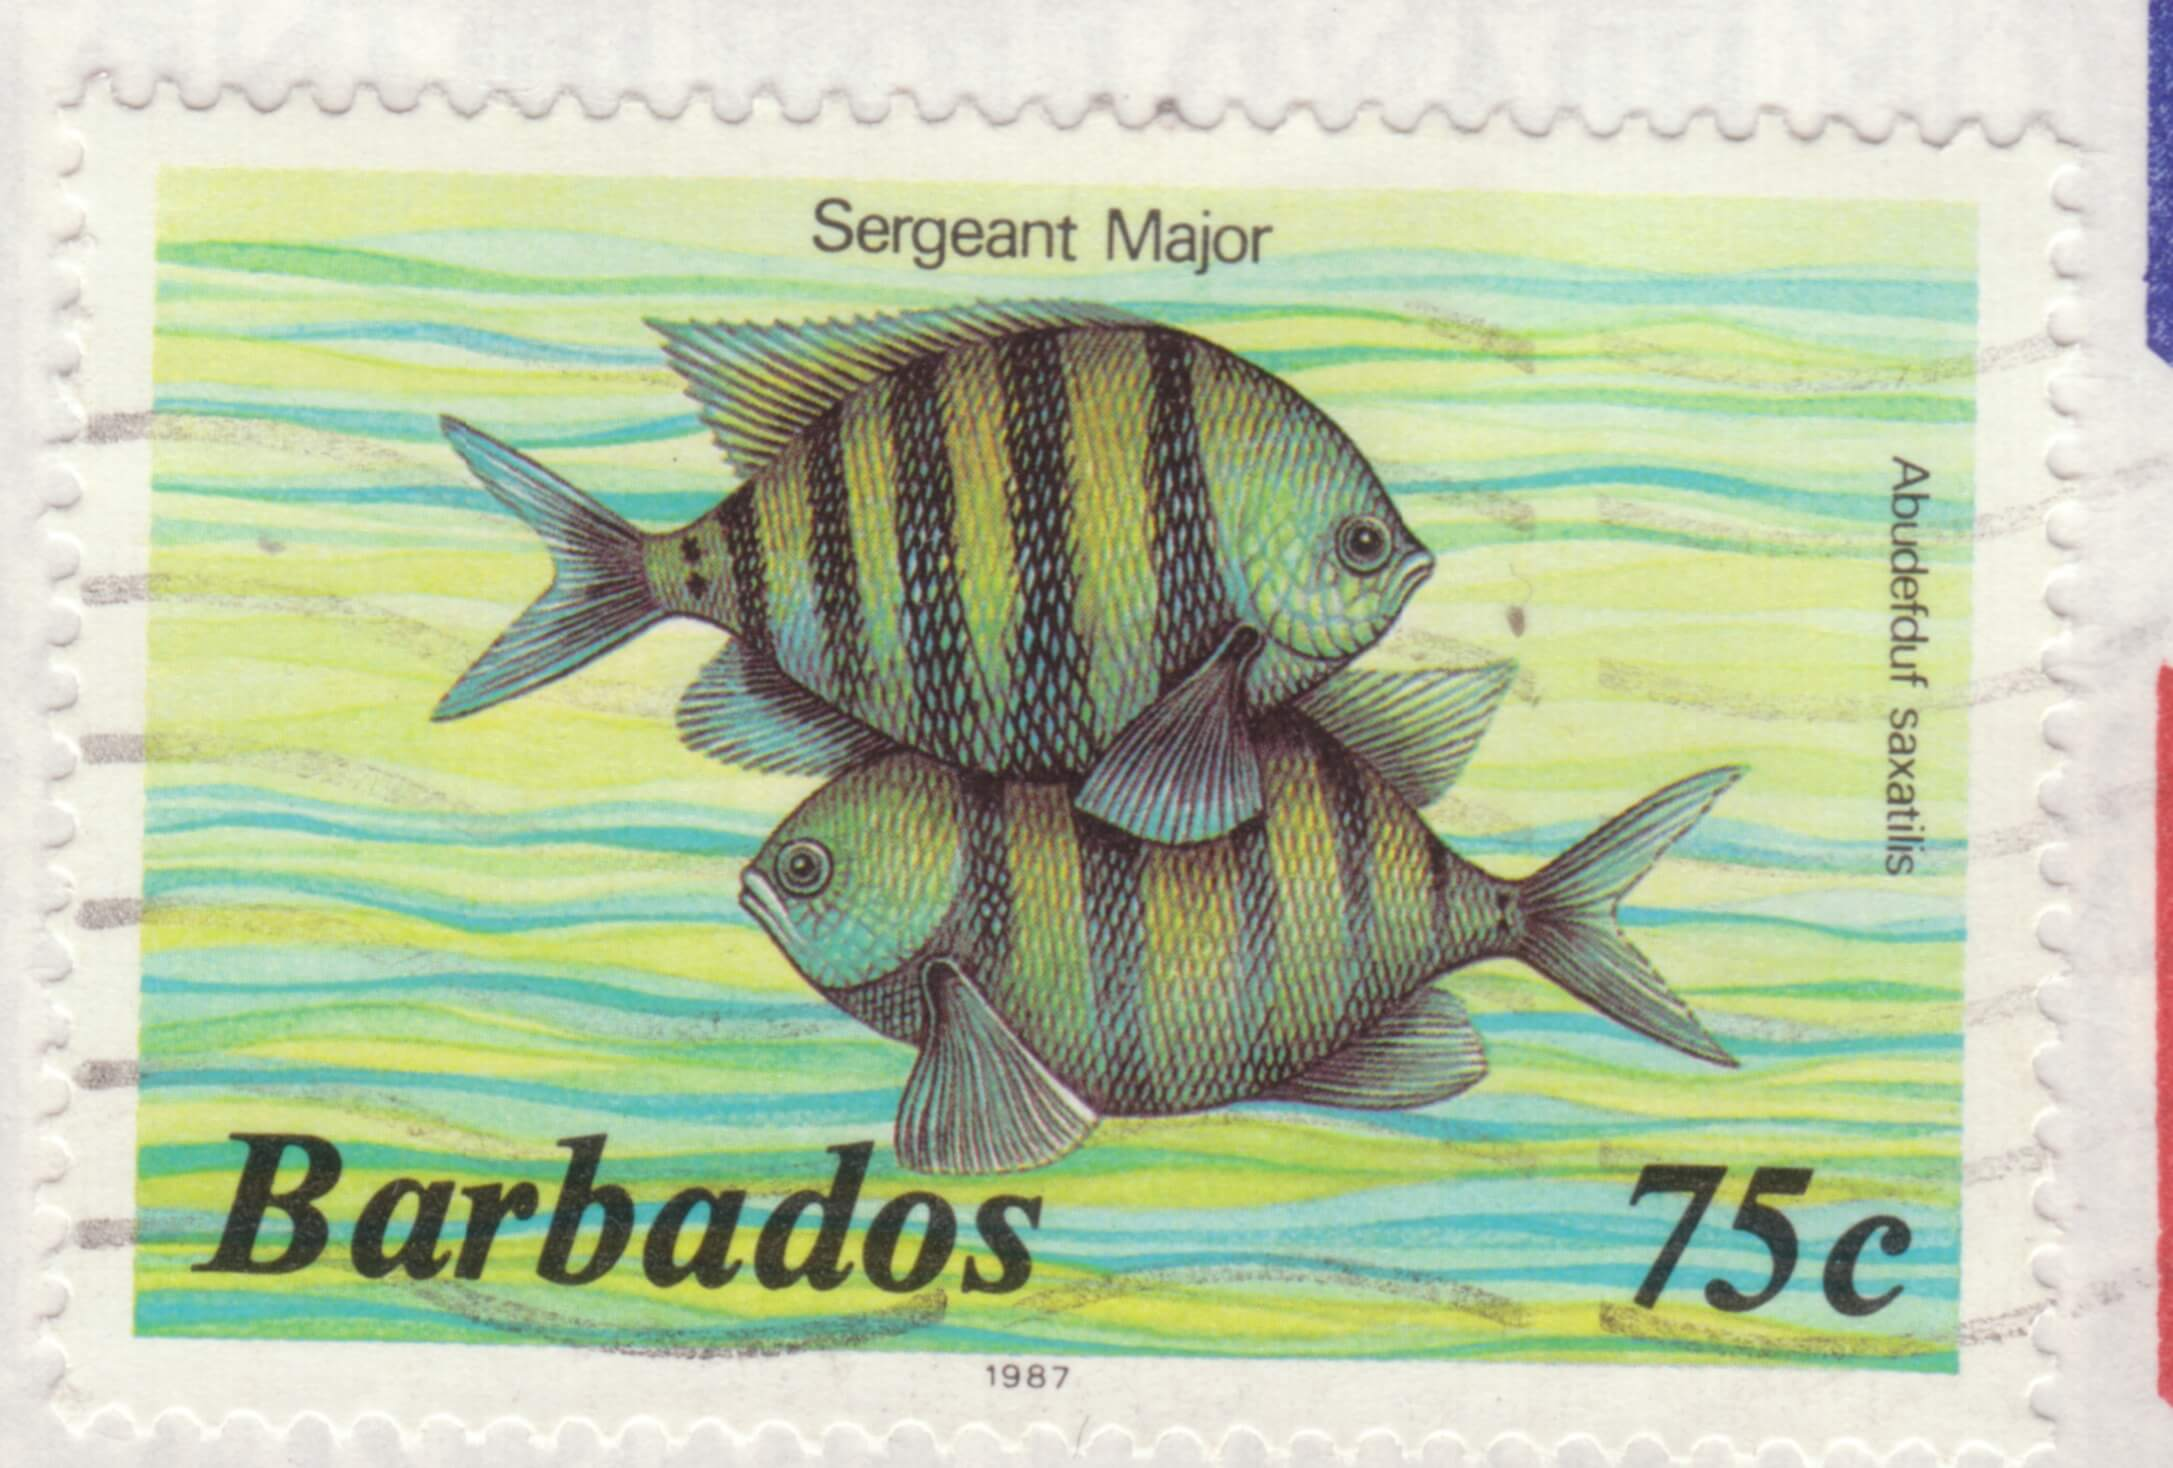 Barbados 75c Sargent Major stamp 1987